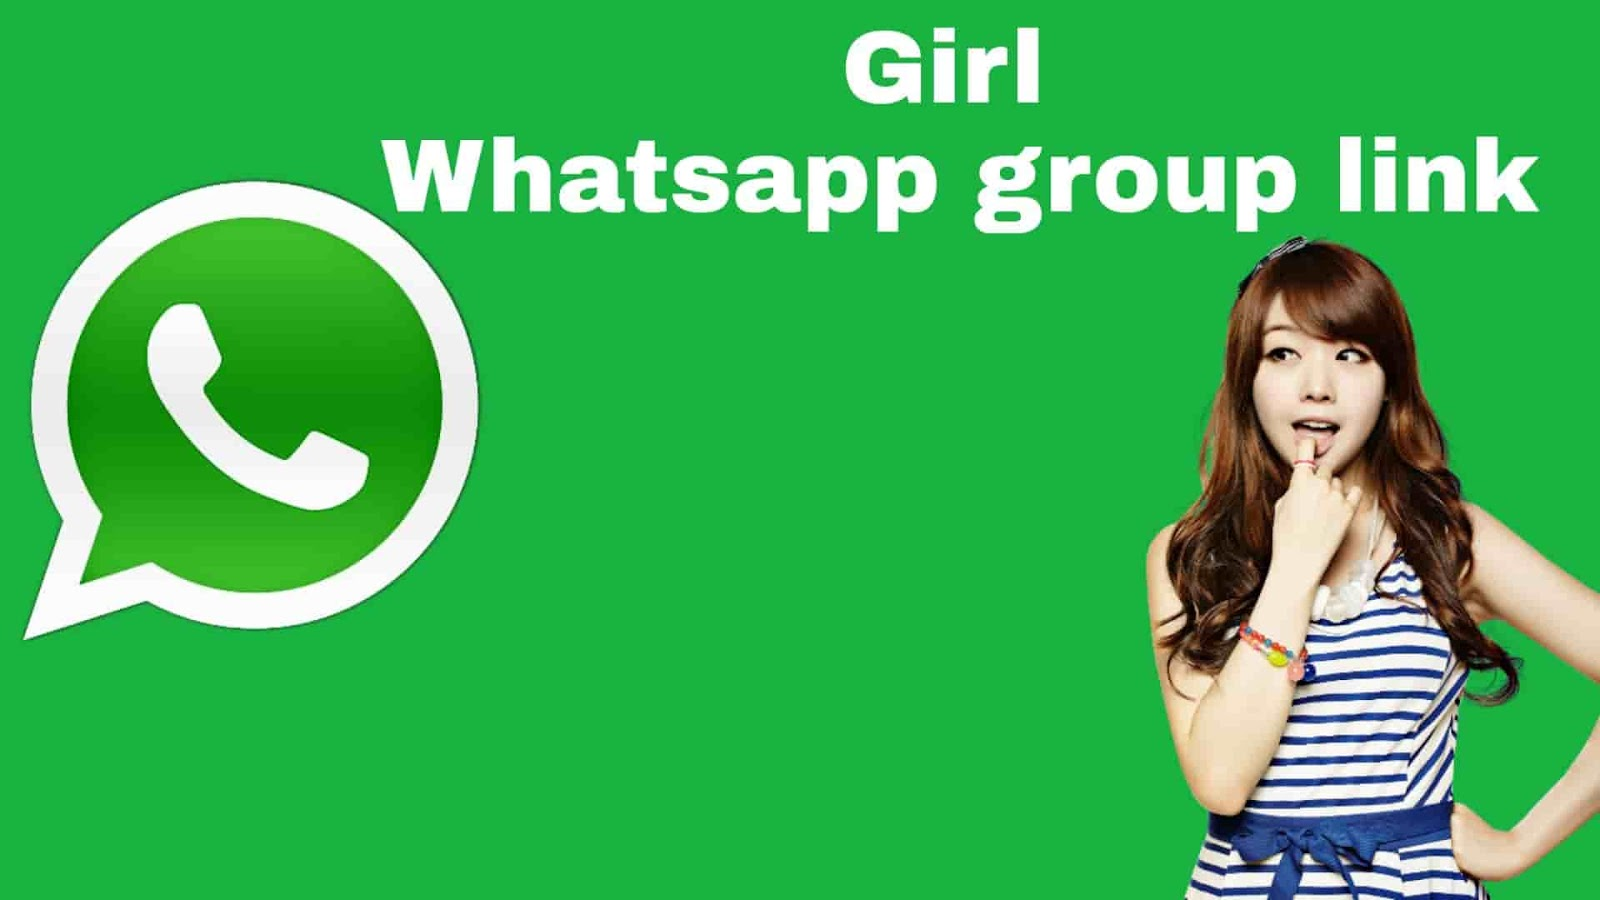 Girl Whatsapp group link | Full active girl Whatsapp group link 2019